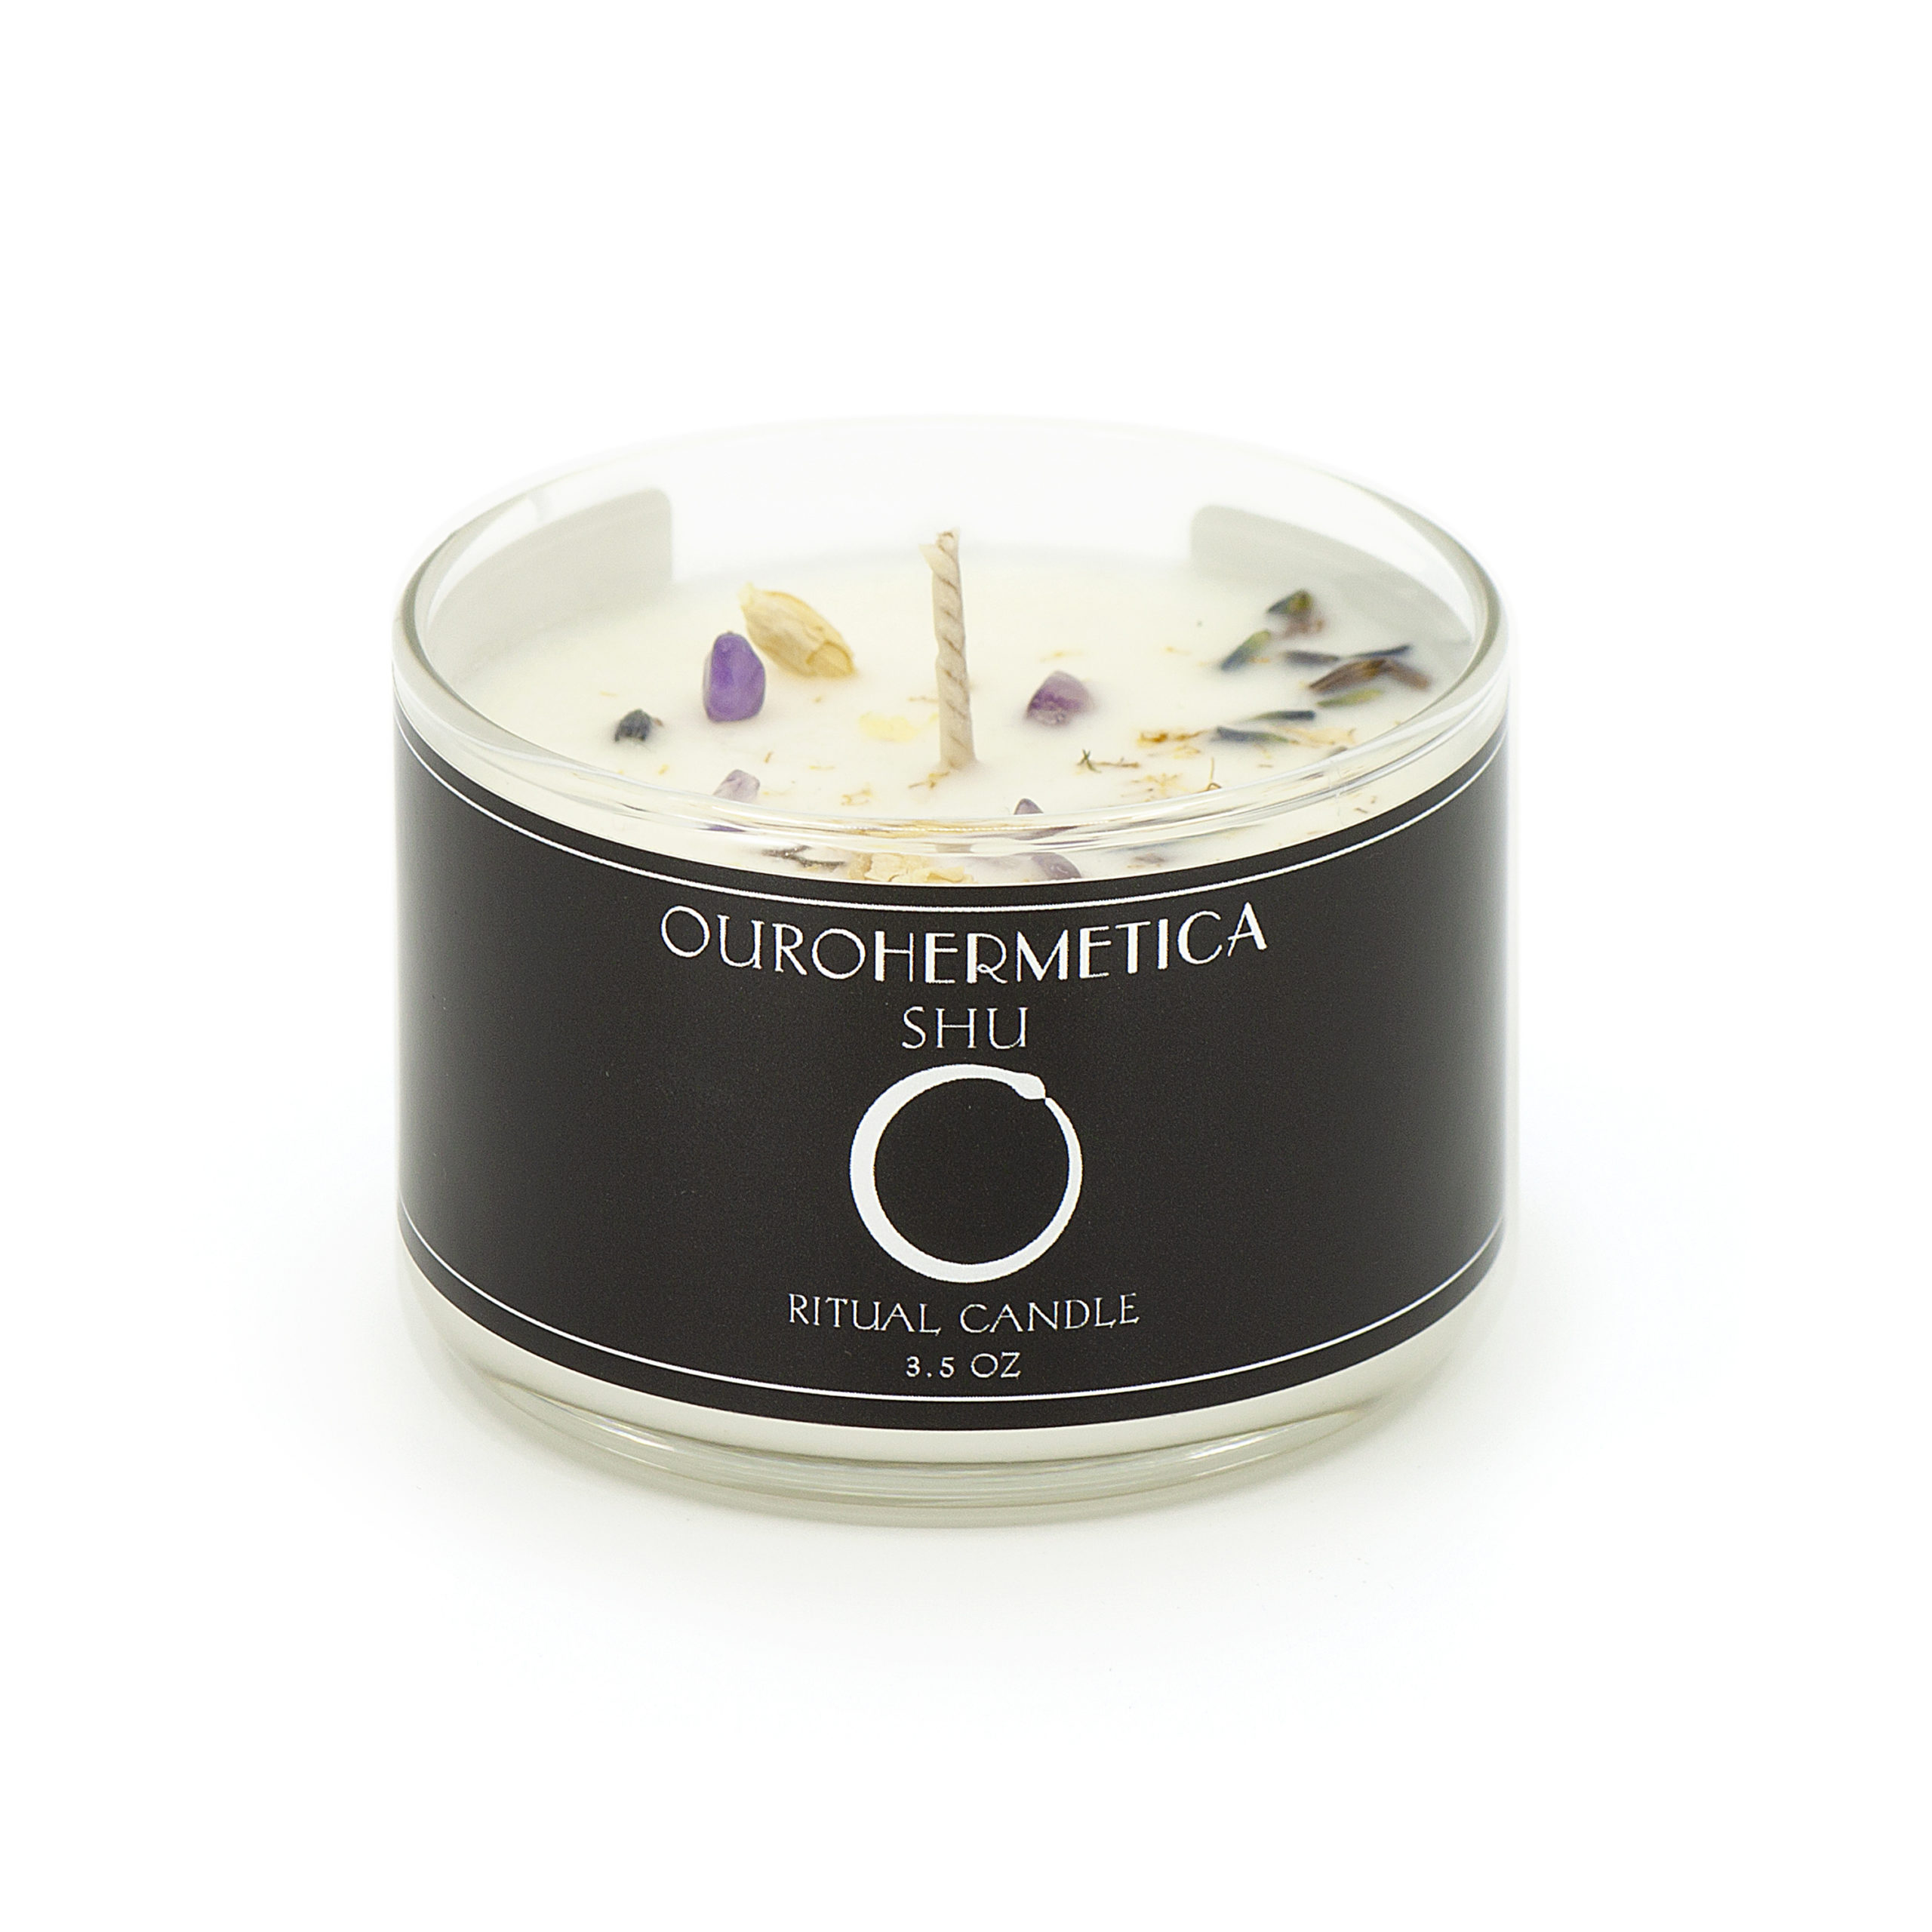 3.6 ounce candle in clear jar with black OuroHermetica label with white ouroboros icon